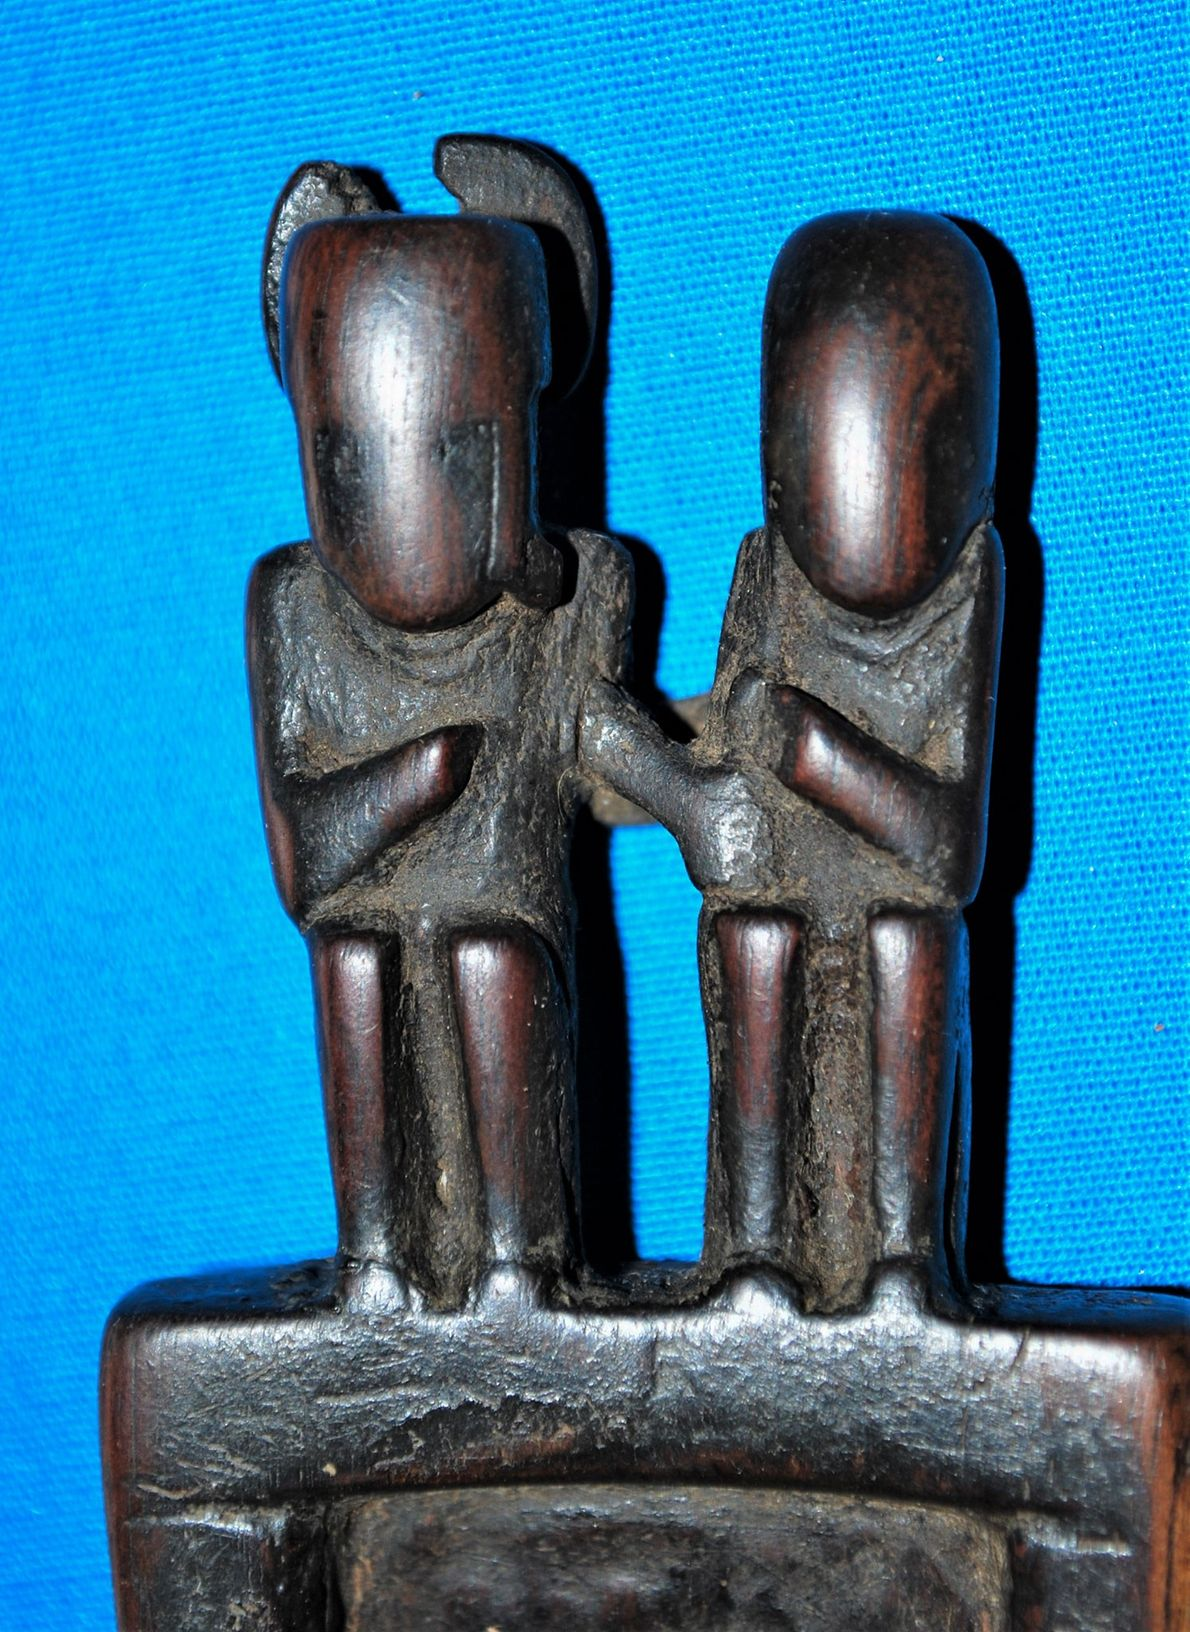 Figurines decorate a carved wooden snuffing tablet from the Cueva del Chileno find.